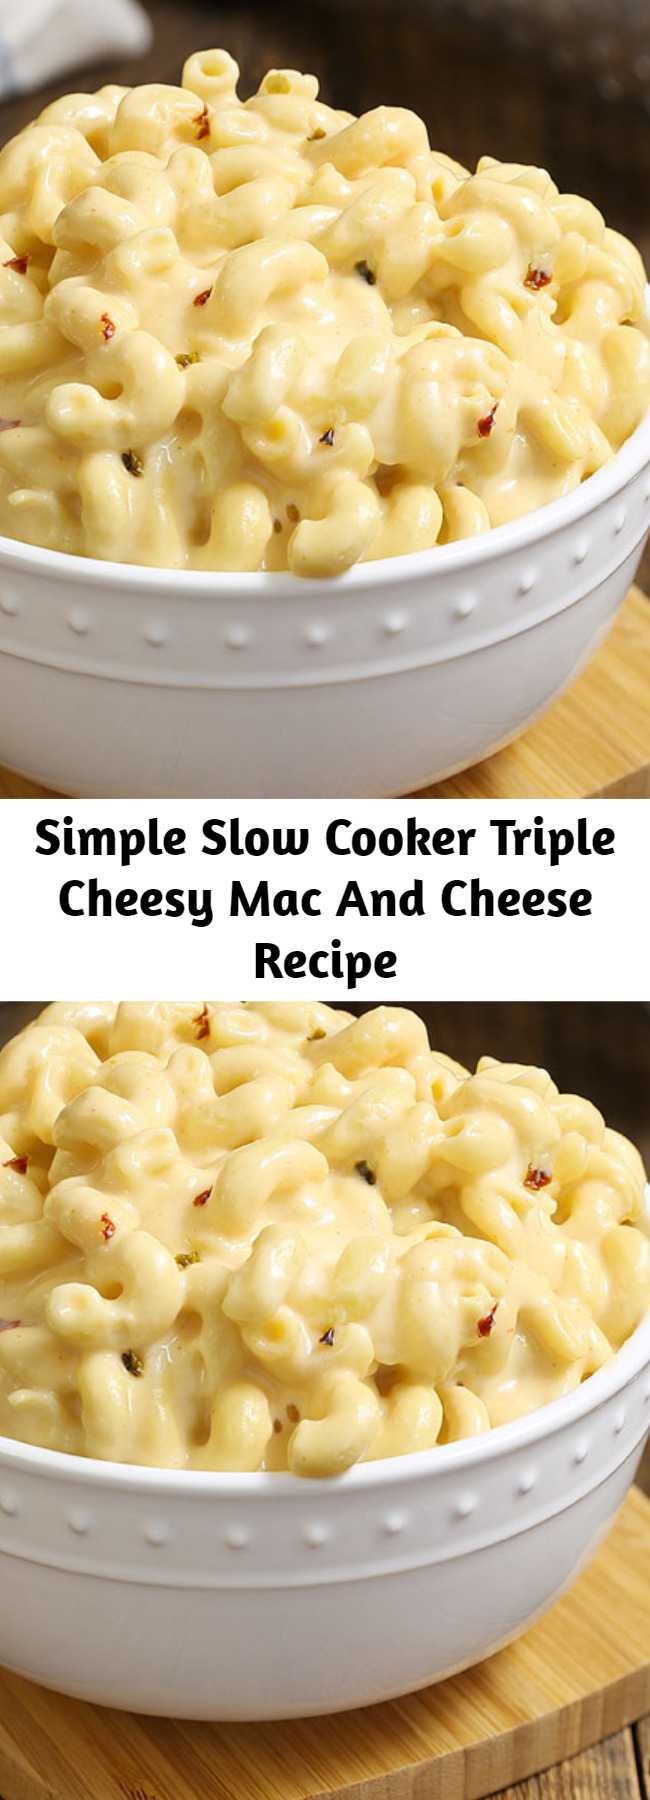 Simple Slow Cooker Triple Cheesy Mac And Cheese Recipe - A simple recipe that you can toss together in just 5 minutes. It's pure comfort in a bowl, with perfectly tender corkscrew pasta with twists and ridges that capture the luscious pepper Jack and cheddar cheese sauce. It has just enough heat to wake up your taste buds. Check out the video above the recipe to see how easy this Best Ever Mac and Cheese is to make! #slowcooker #macandcheese